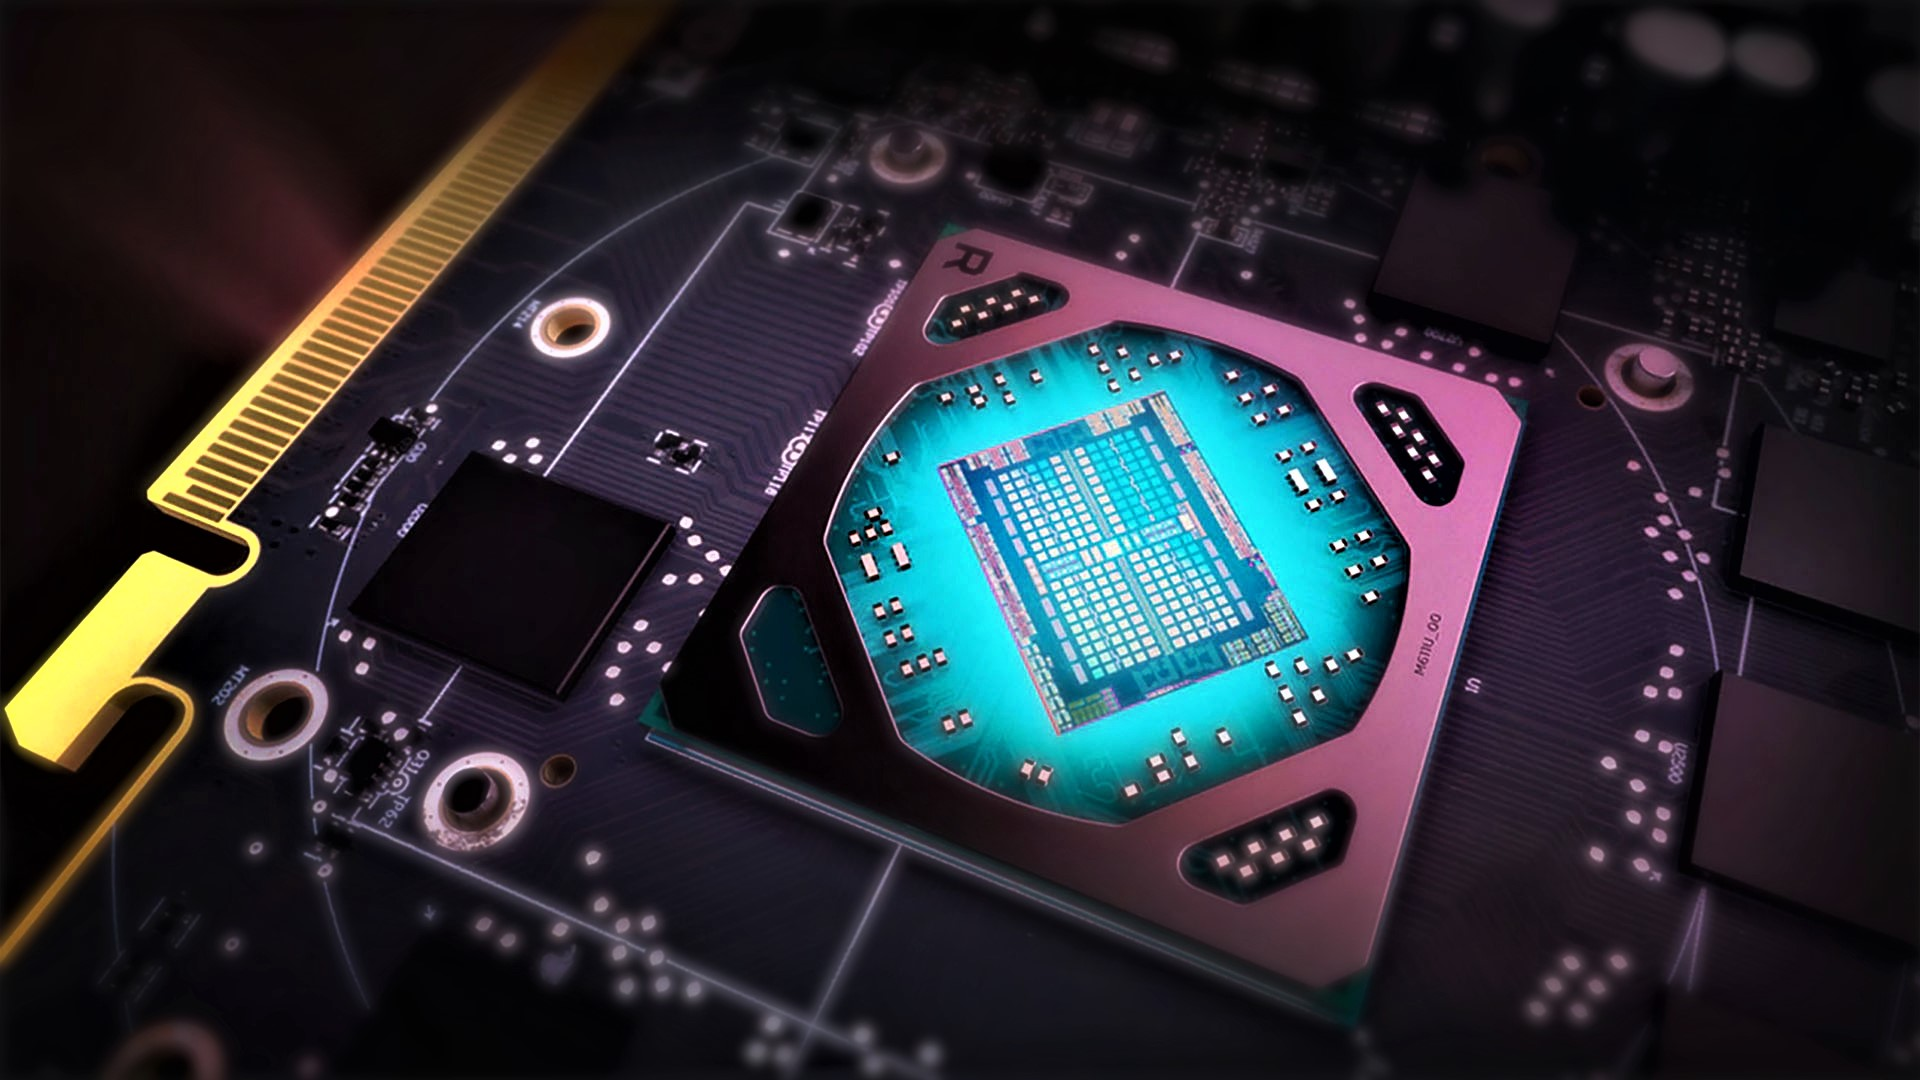 AMD Navi XT graphics card to cost $499 and outpace Nvidia's